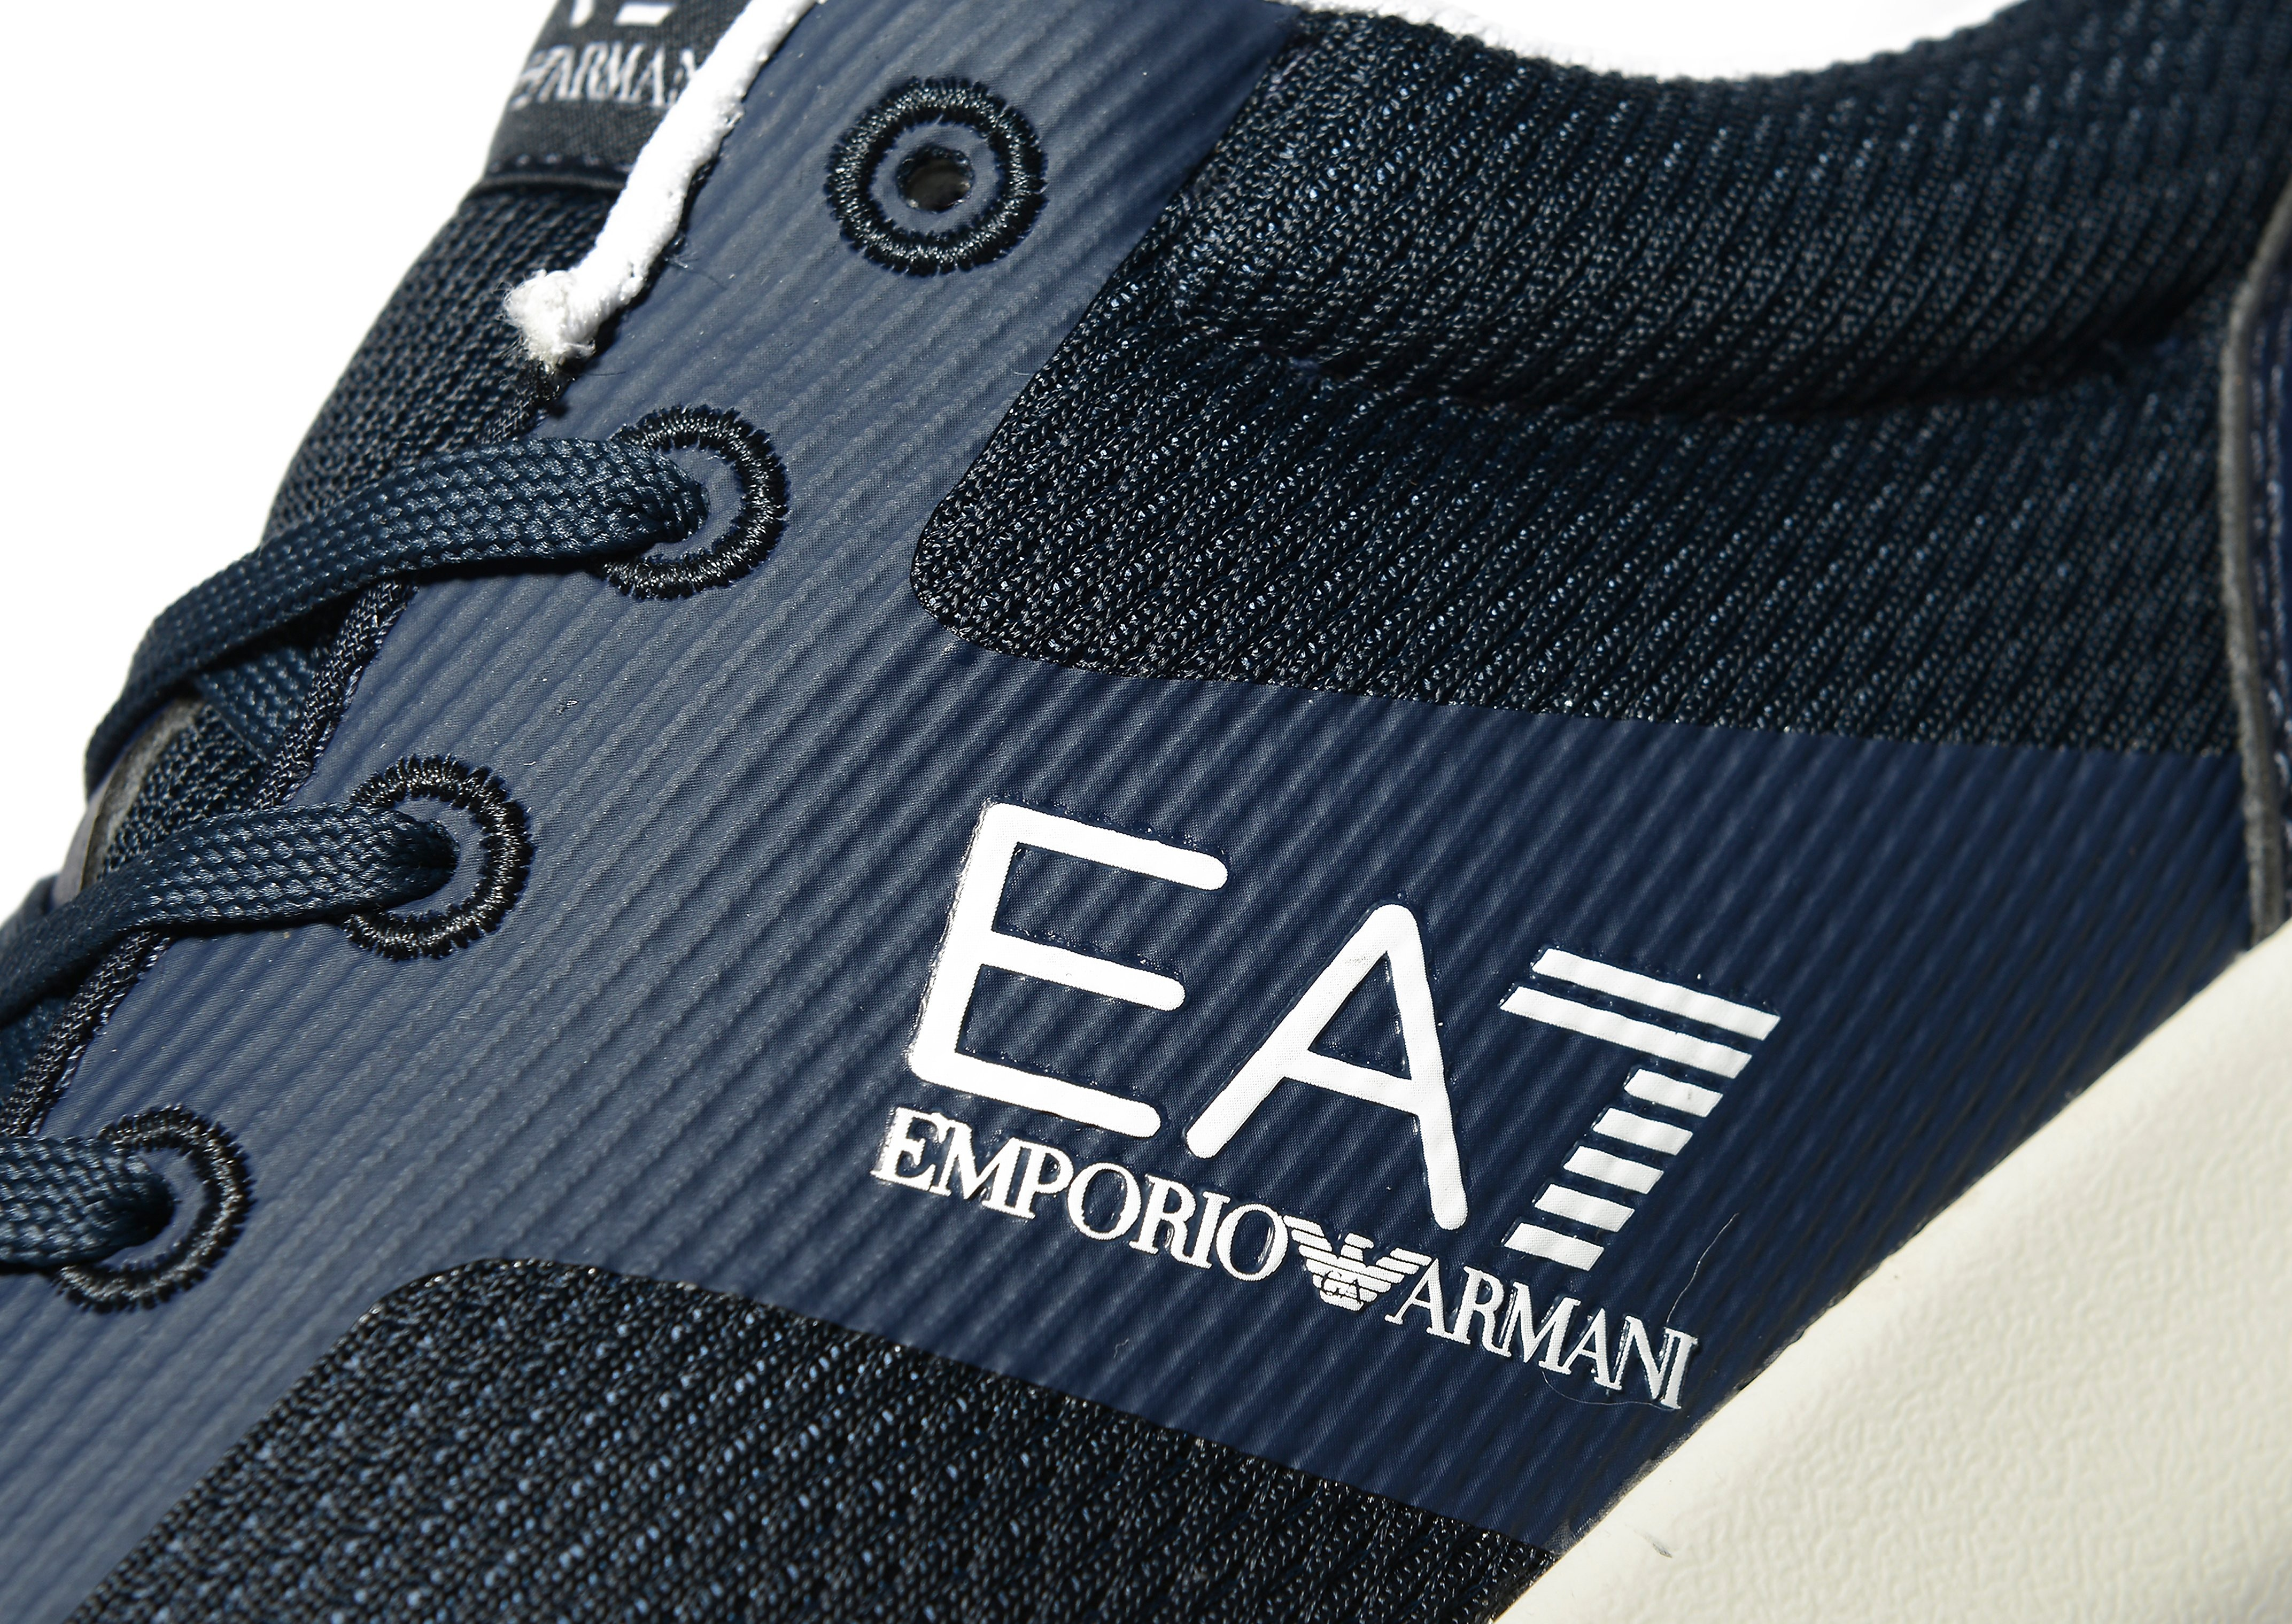 Emporio Armani EA7 Simple Racer